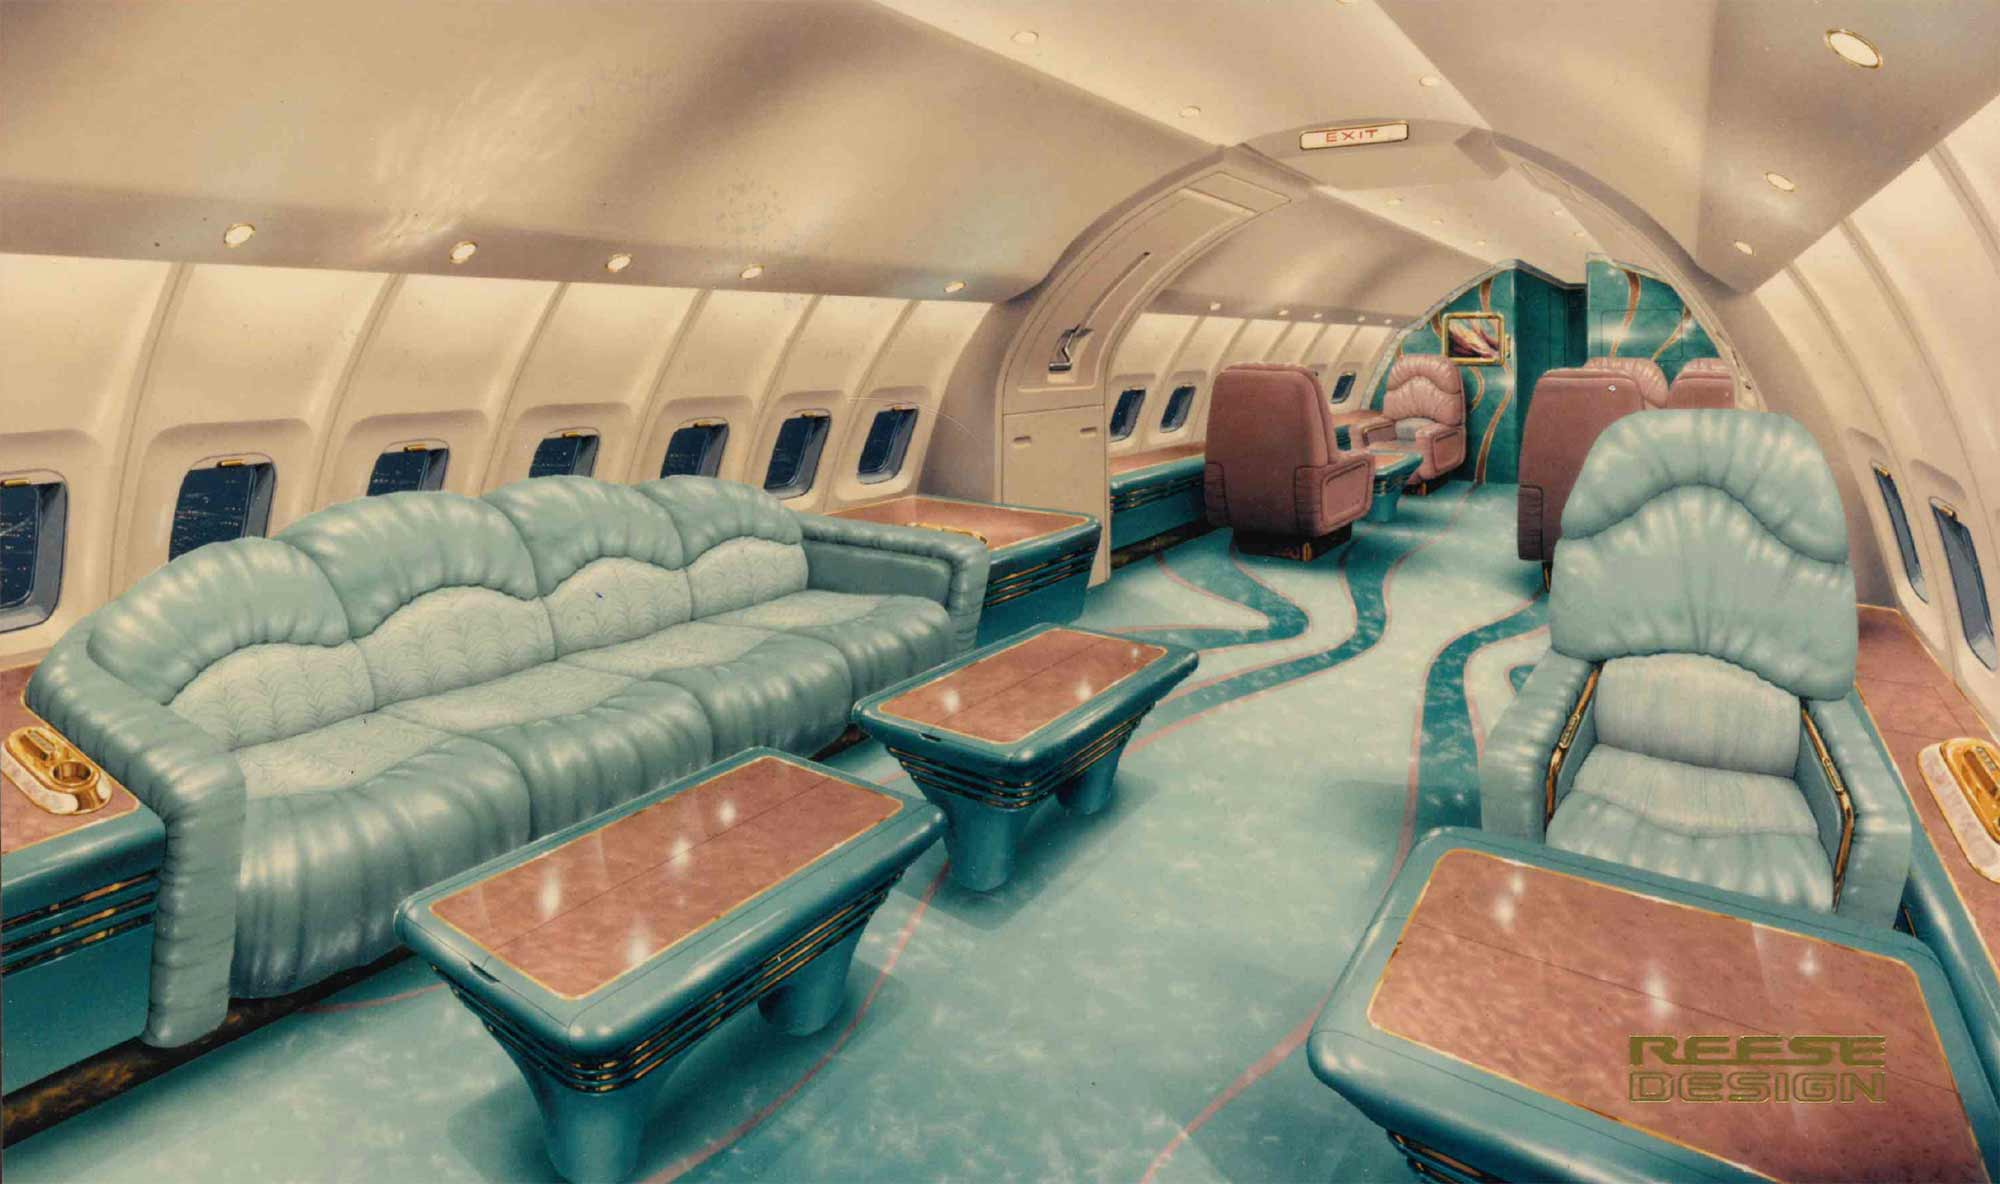 A concept drawing of the inside of a custom 747 airliner